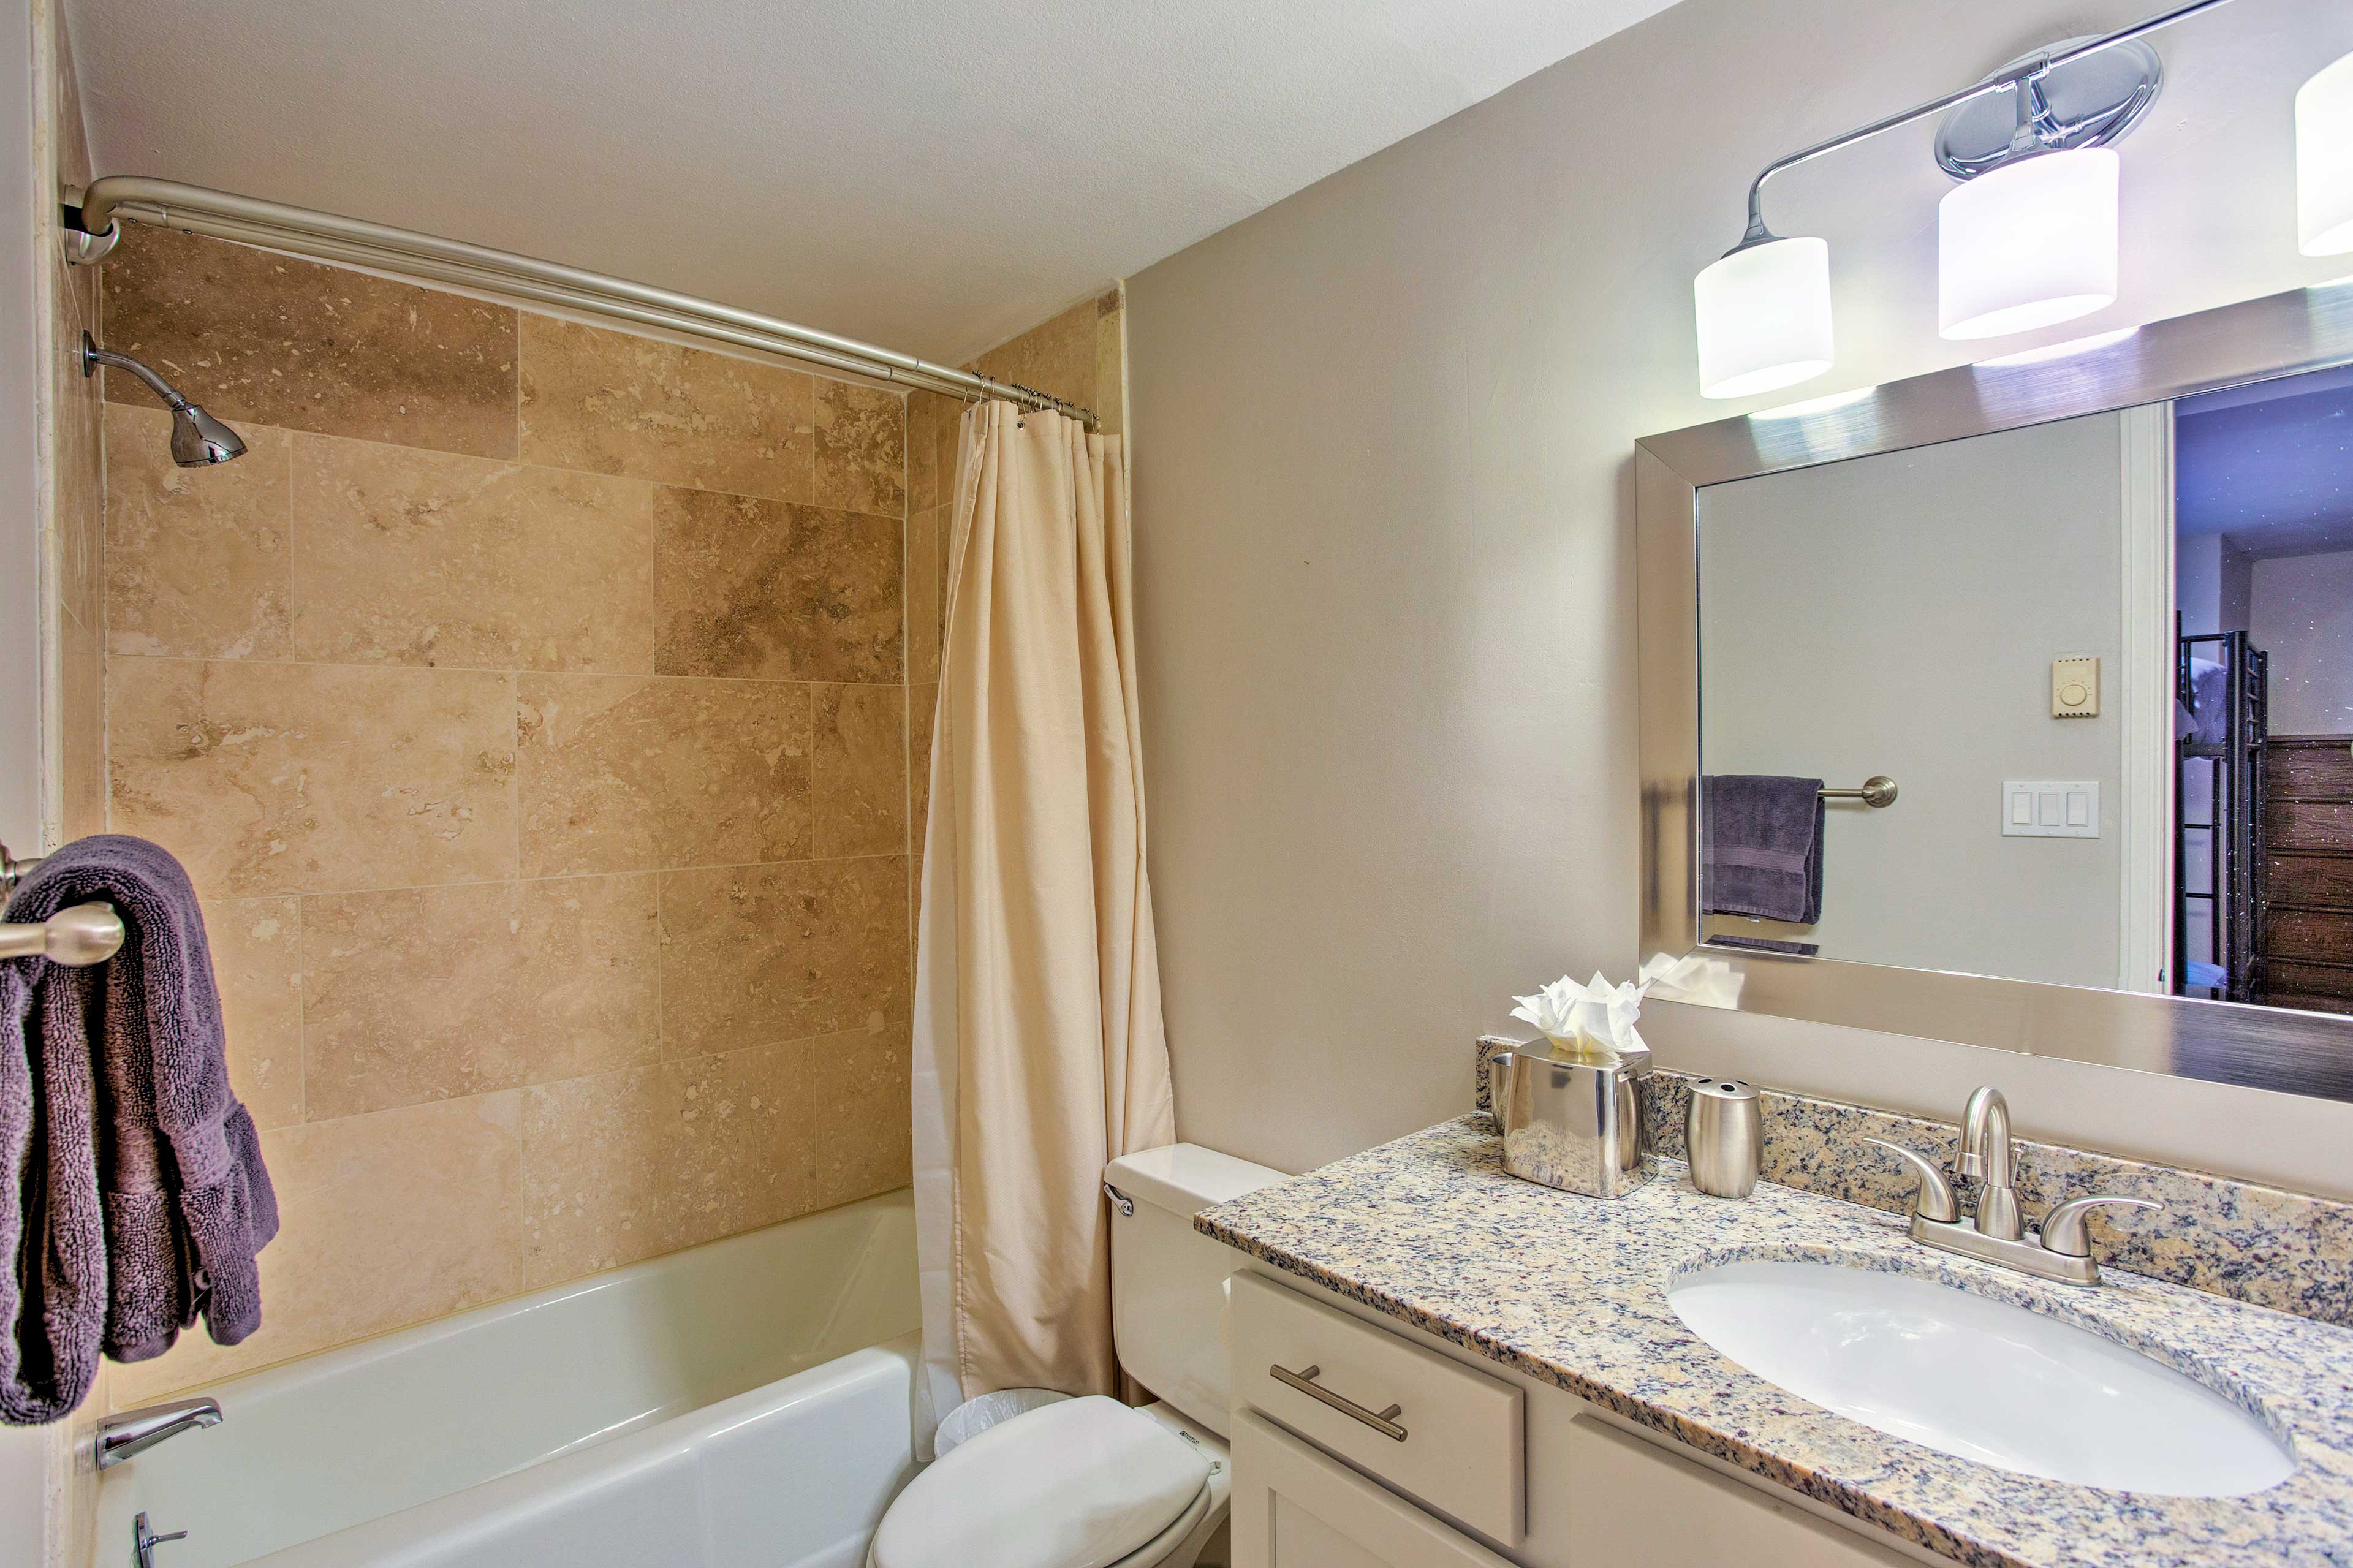 Rinse off the trail dust in the first full bathroom.